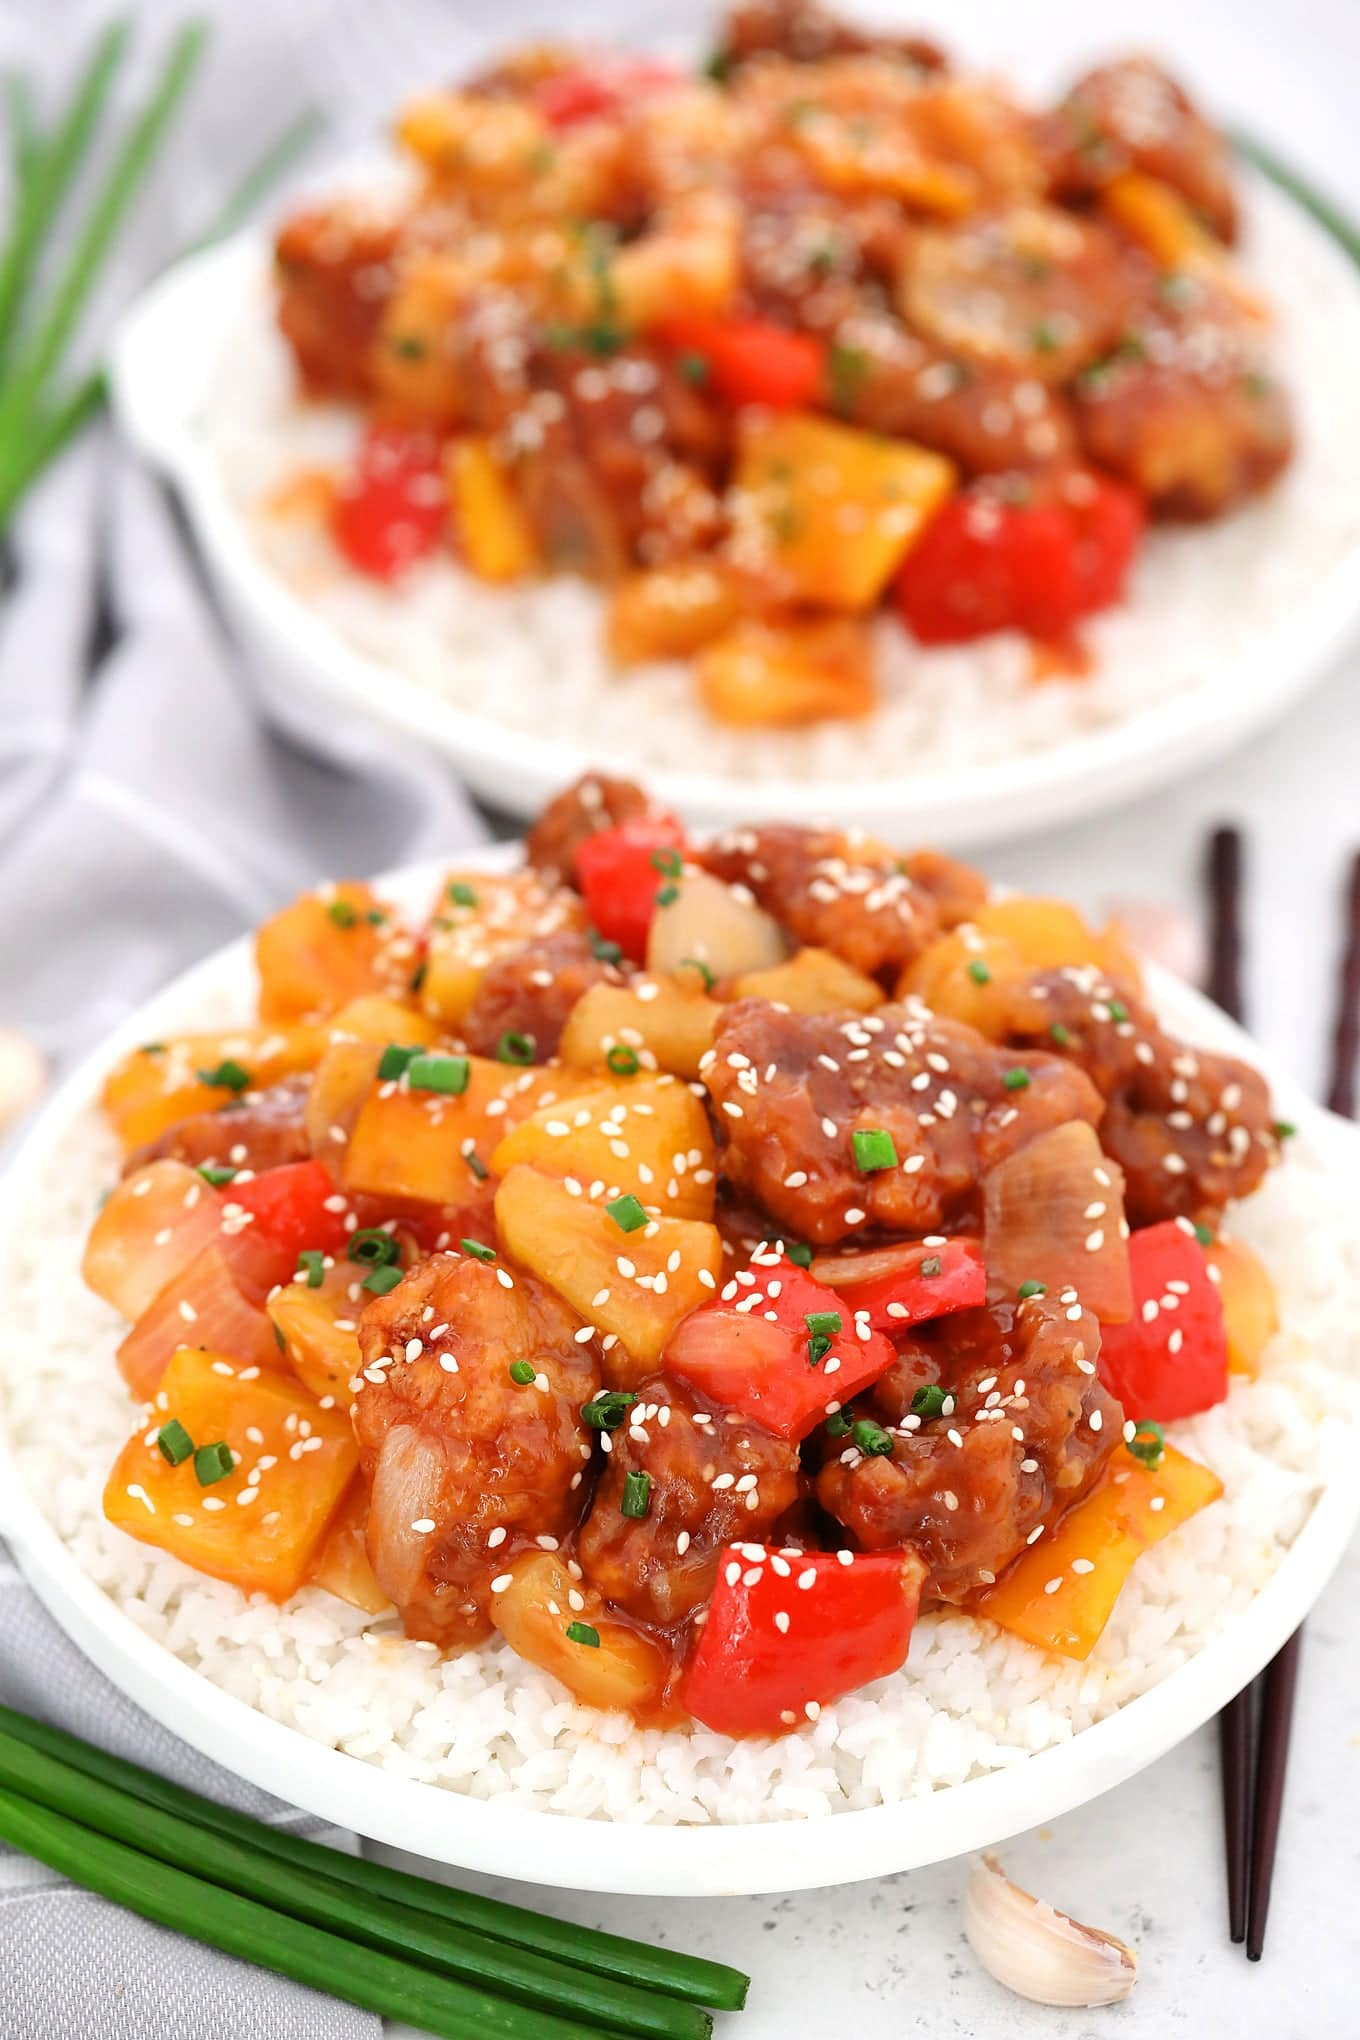 Sweet And Sour Pork Recipe Video Sweet And Savory Meals